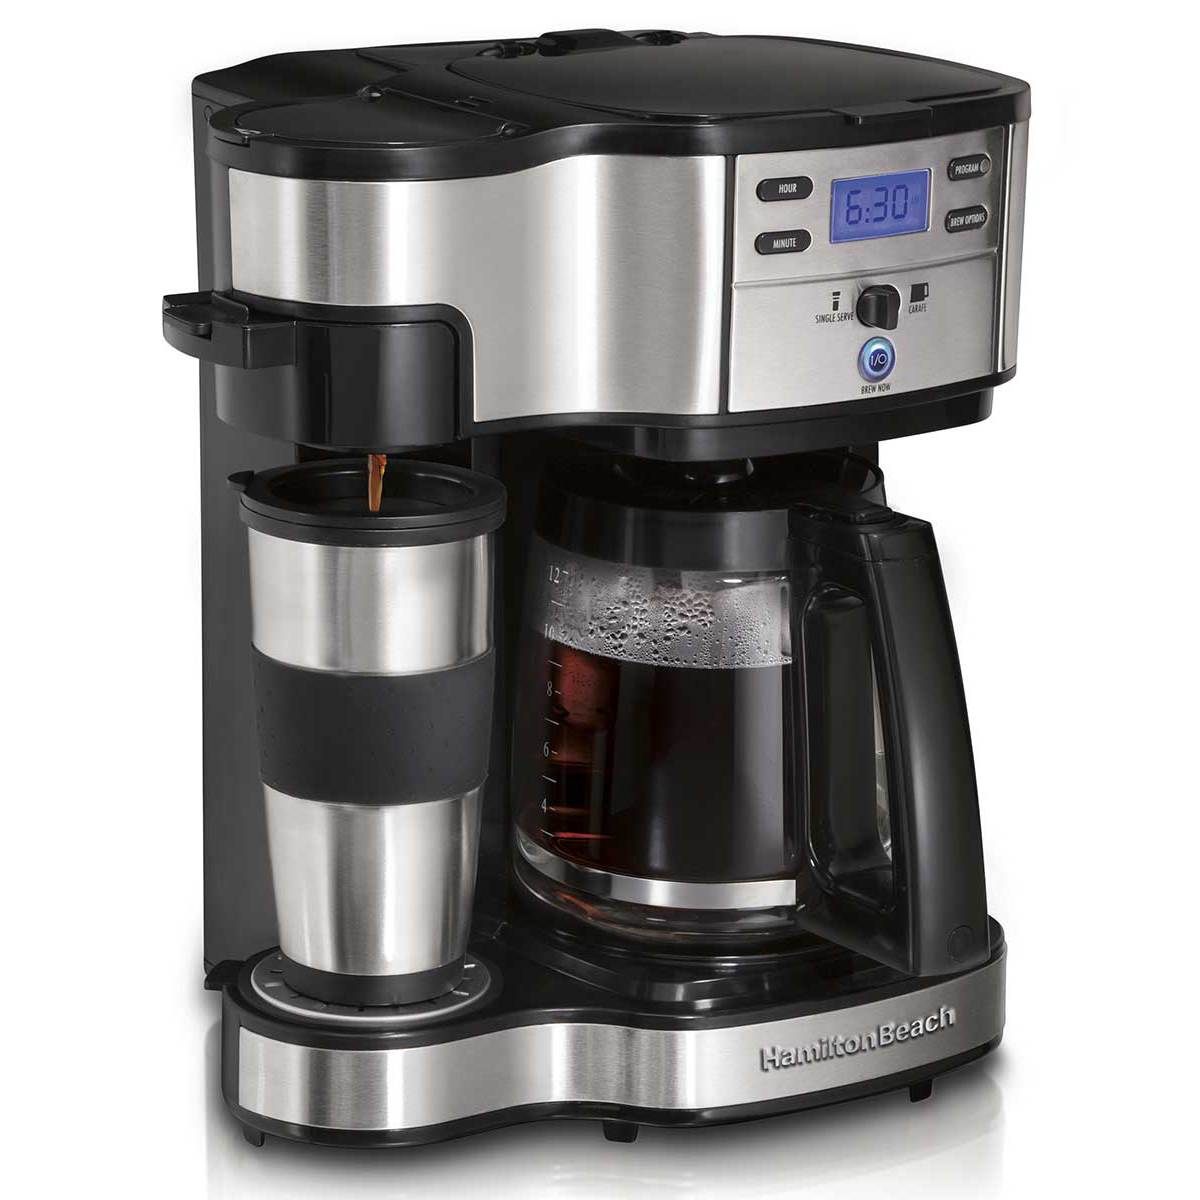 2-Way Coffee Maker with 12 Cup Carafe & Pod Brewing, Black & Stainless (49980Z)